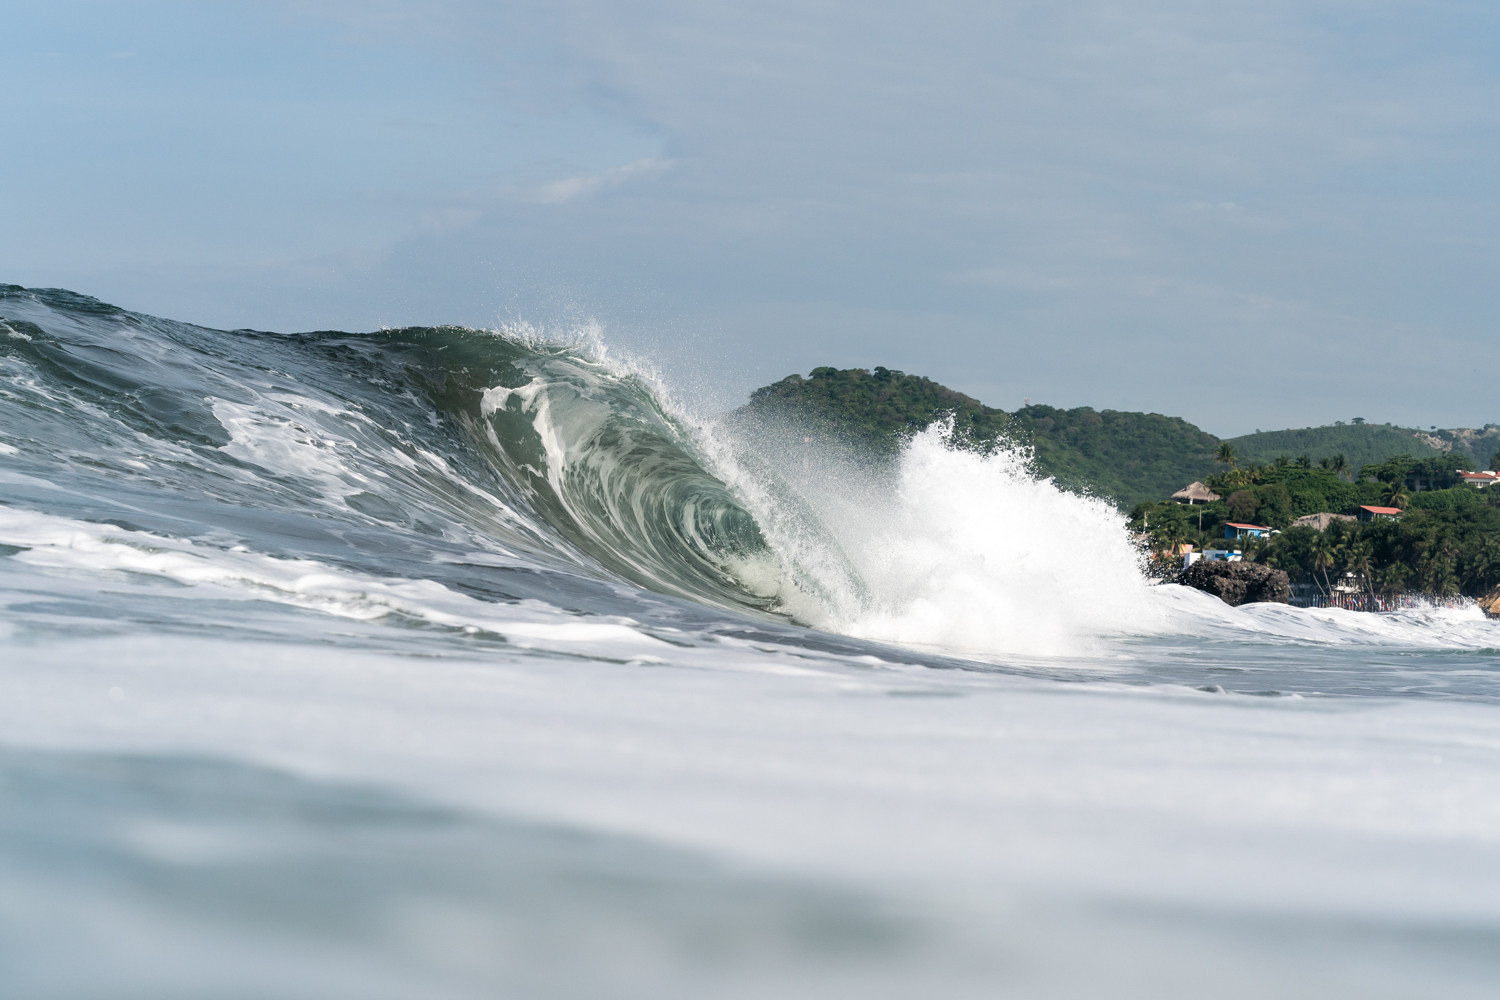 Large waves were a feature of the course for the final day of the World Surfing Games in El Salvador ©ISA/Sean Evans